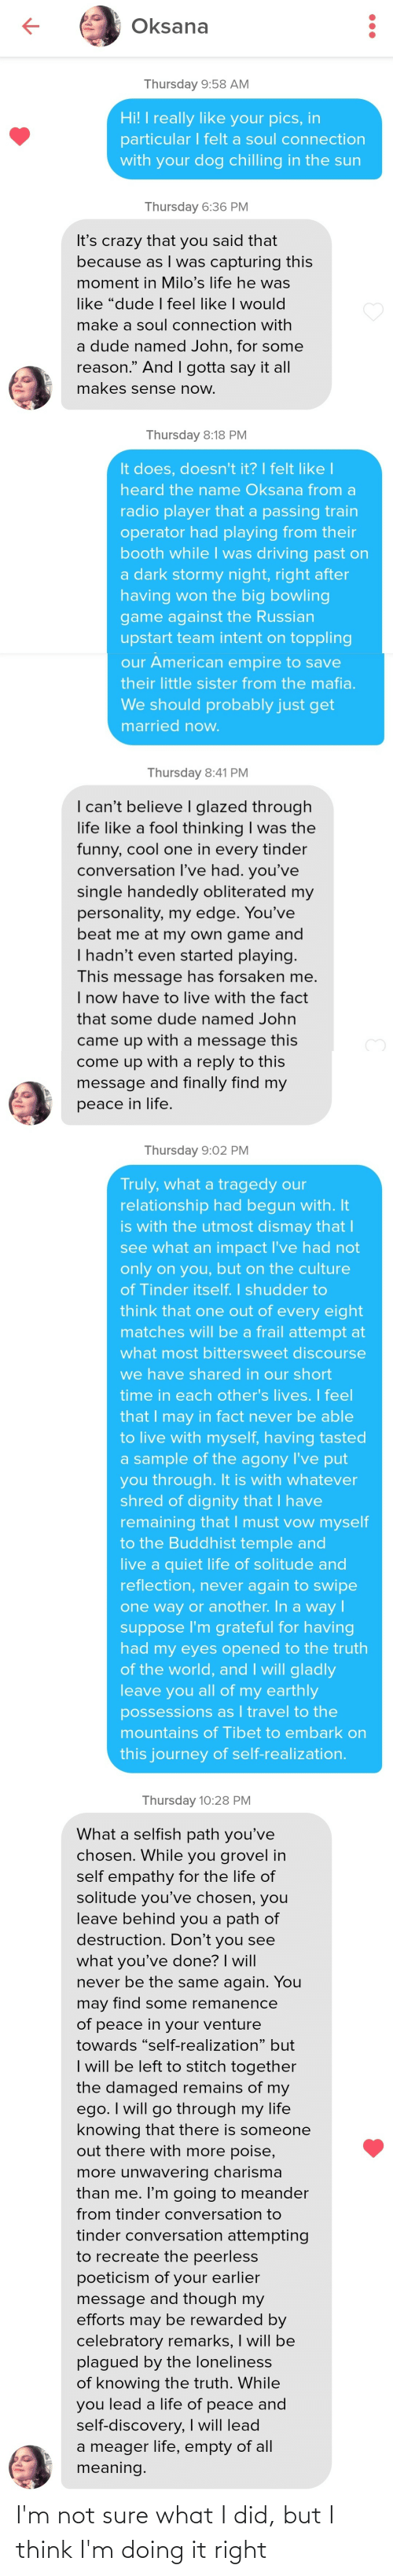 i think: I'm not sure what I did, but I think I'm doing it right